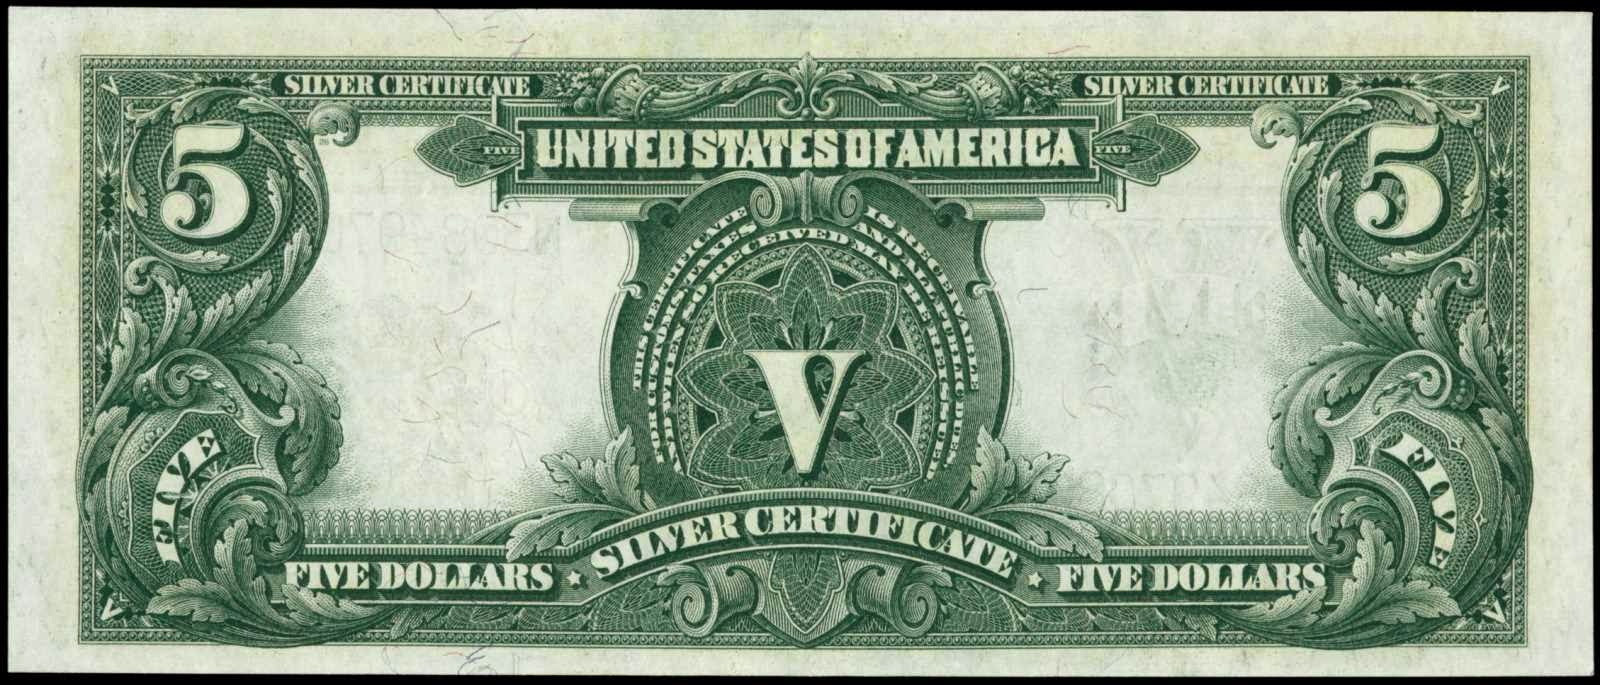 Paper Money of the United States Five Dollar Silver Certificate 1899